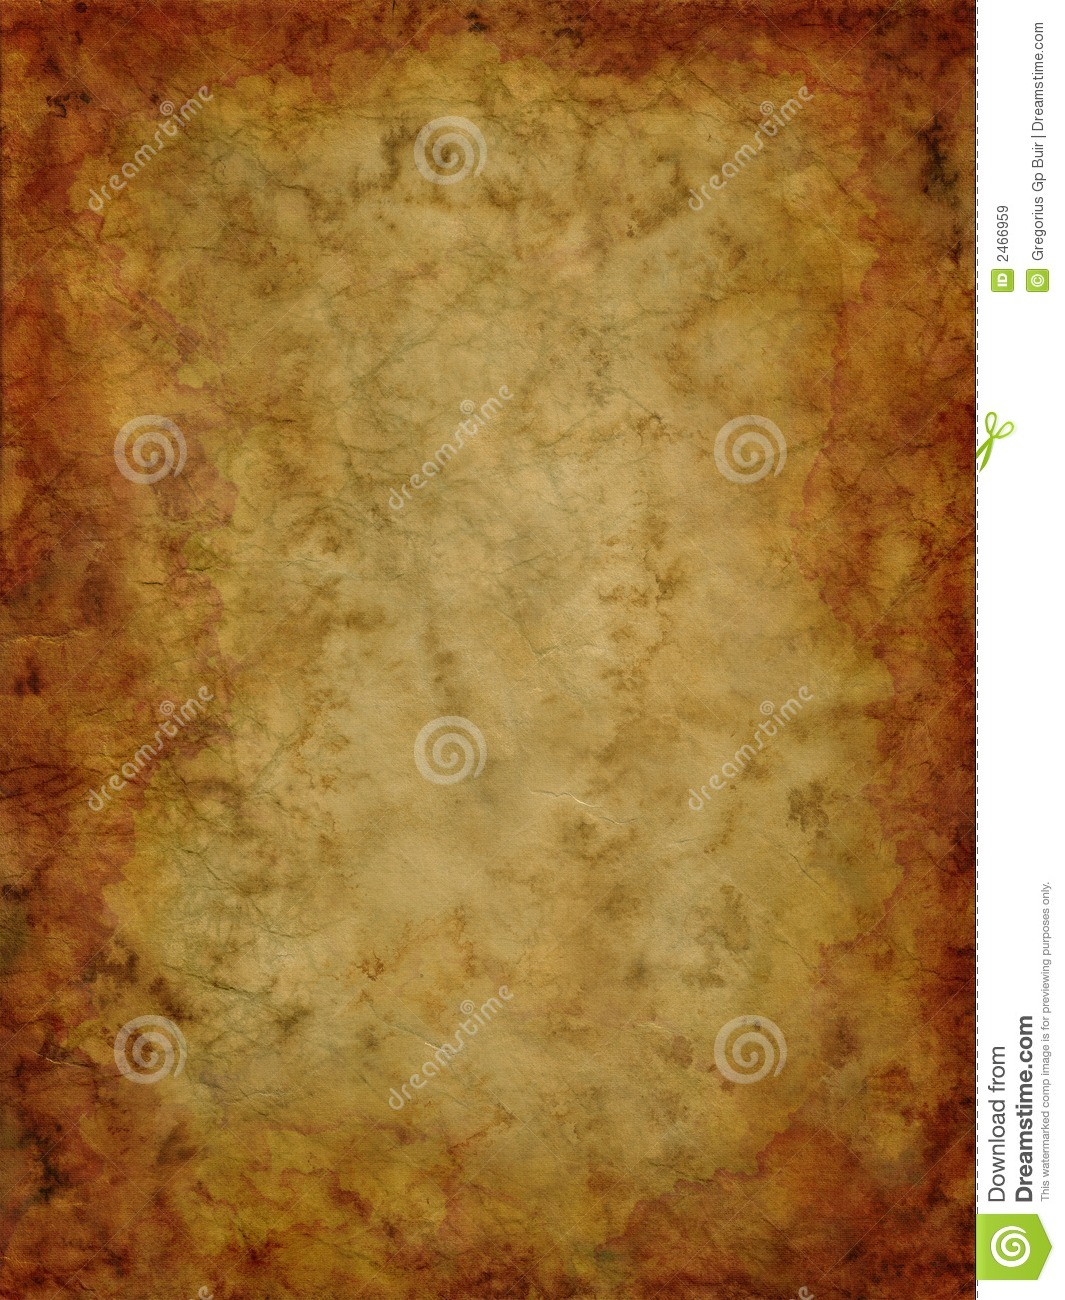 Ancient papyrus background stock image. Image of beige ...